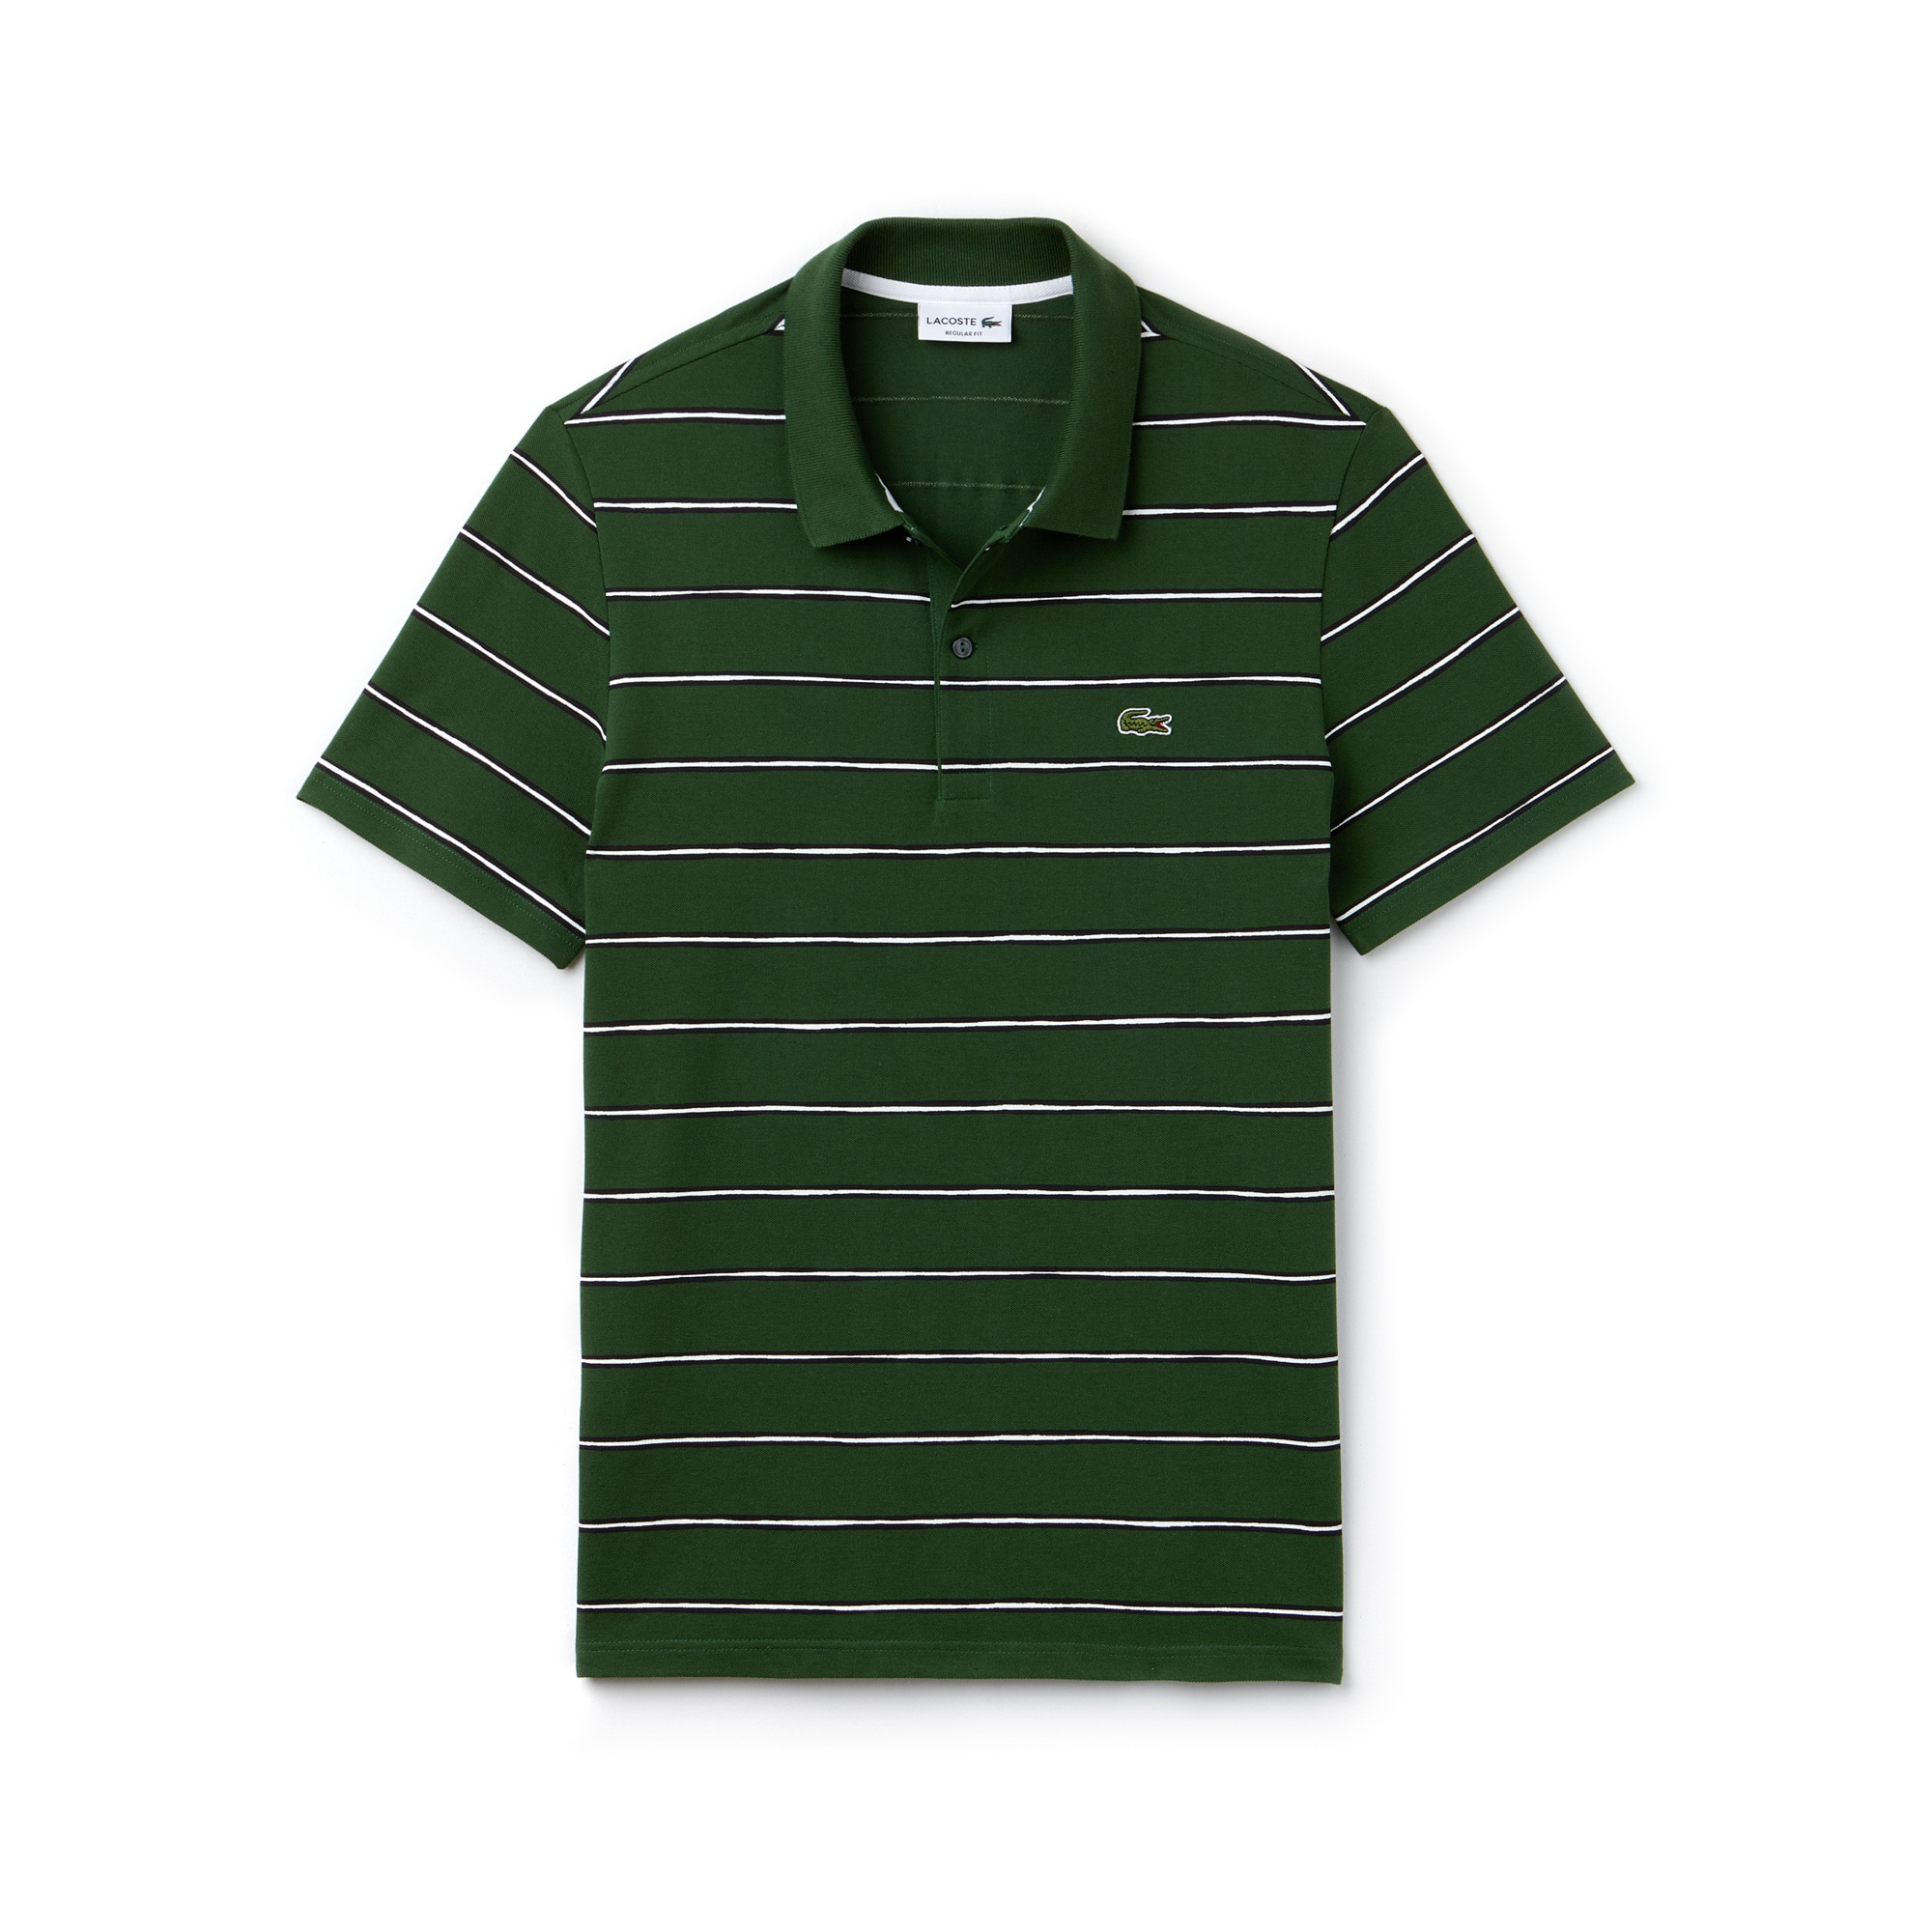 Polo Regular Fit Lacoste De Mini Piqué De Algodón Con Rayas